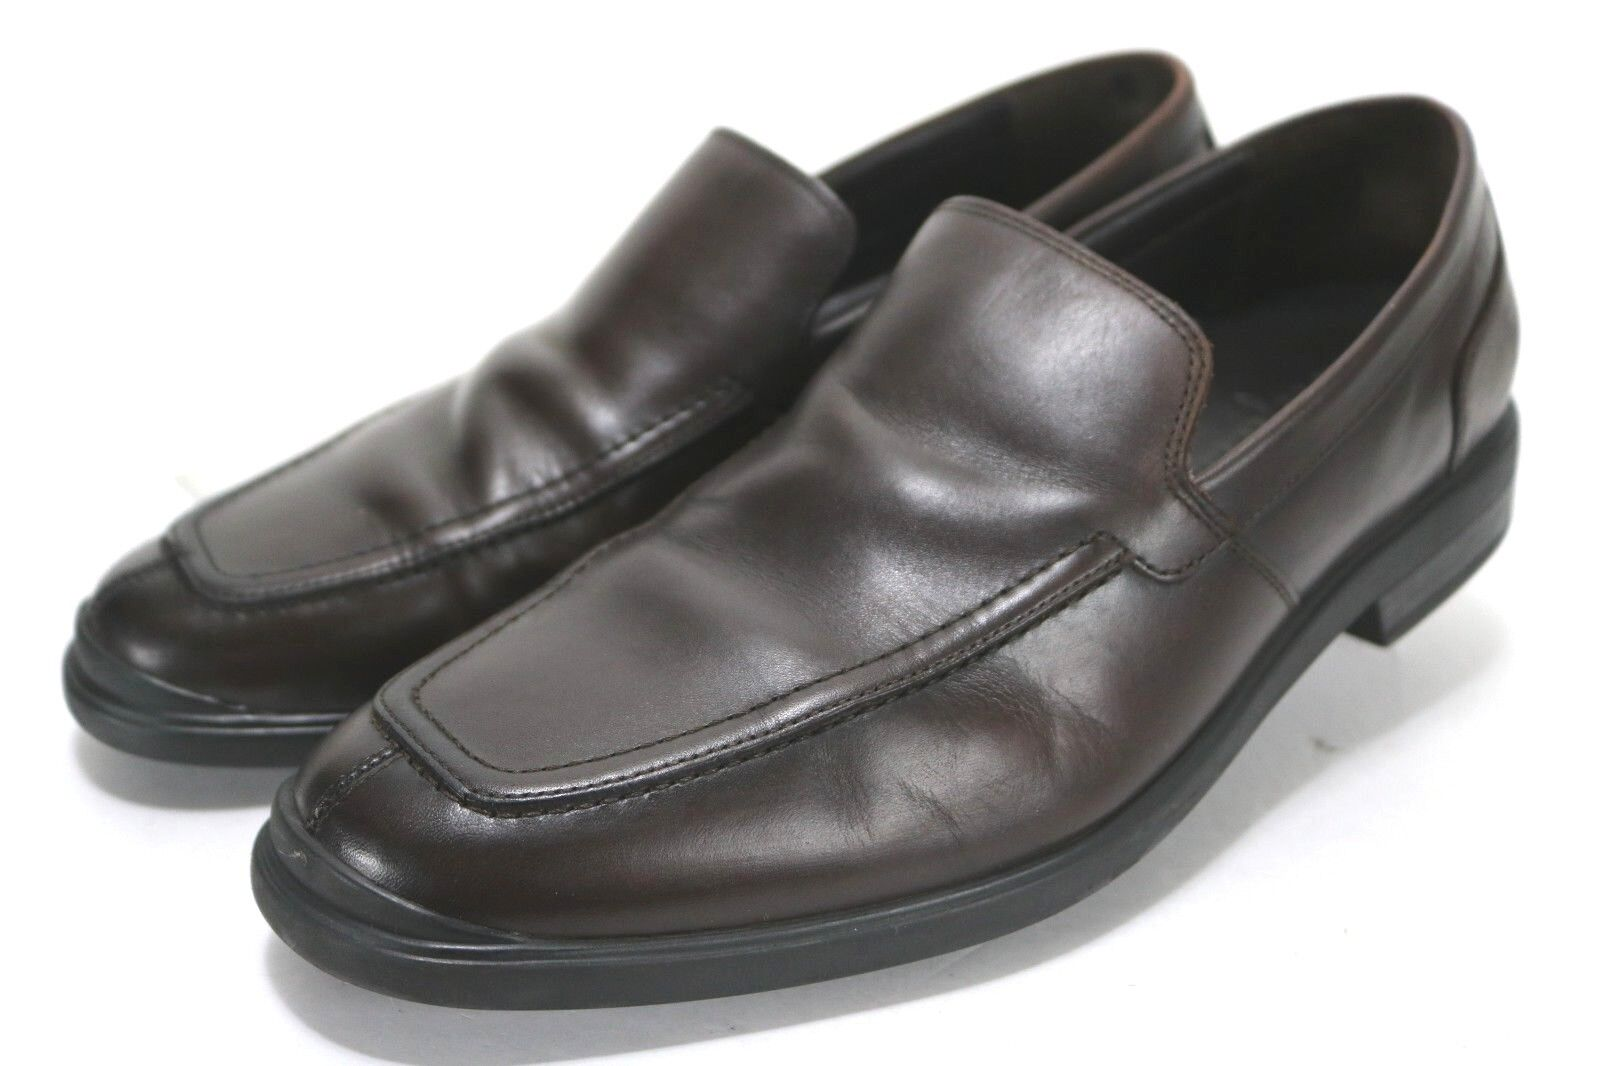 Cole Haan NIK Air Stylar  160 Men's Venetian Loafers shoes Size 10 Leather Brown